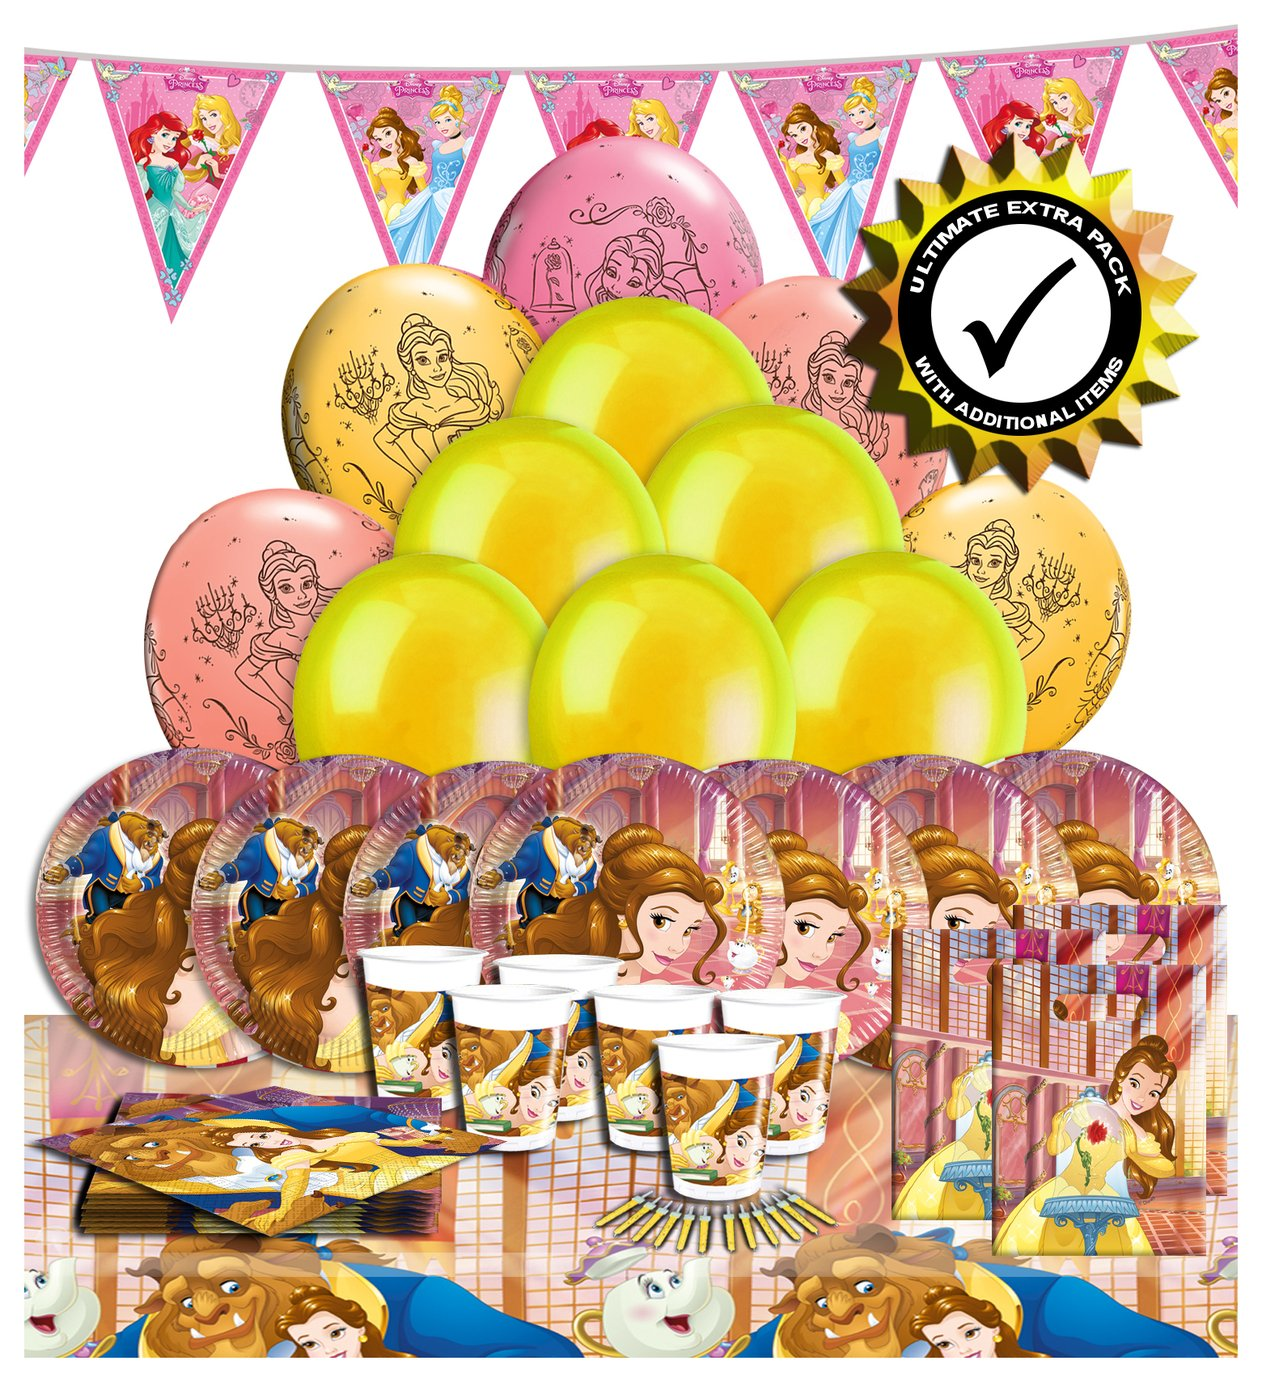 Disney Ultimate Extra Beauty and the Beast Party Pack